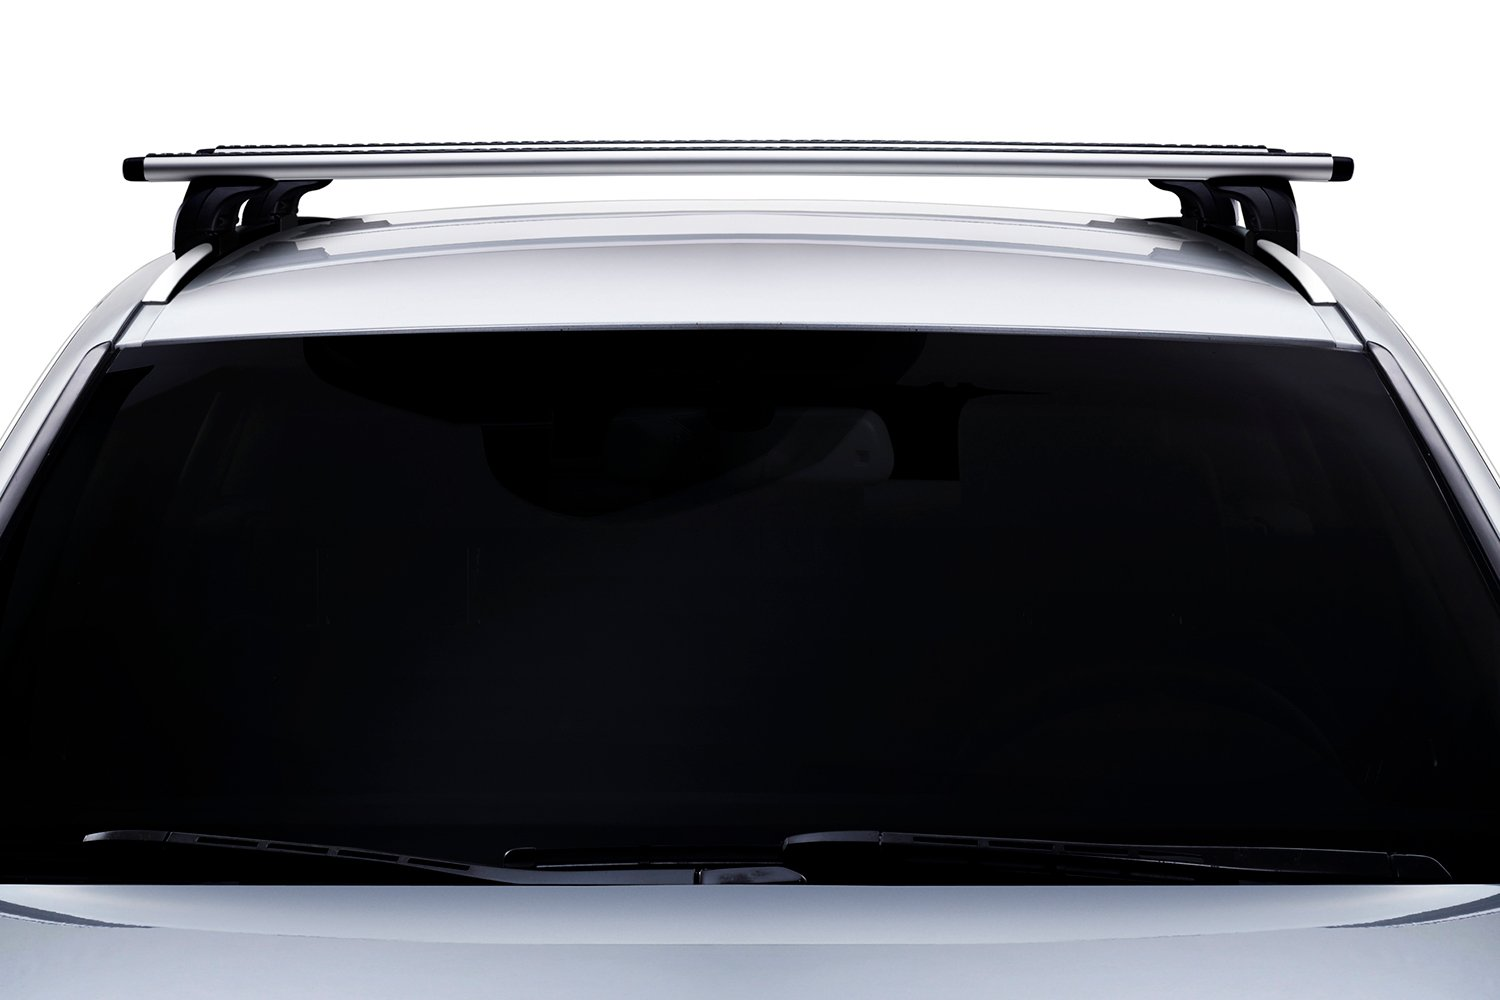 Thule Roof Rack View Larger Image Latest Thule Roof Rack